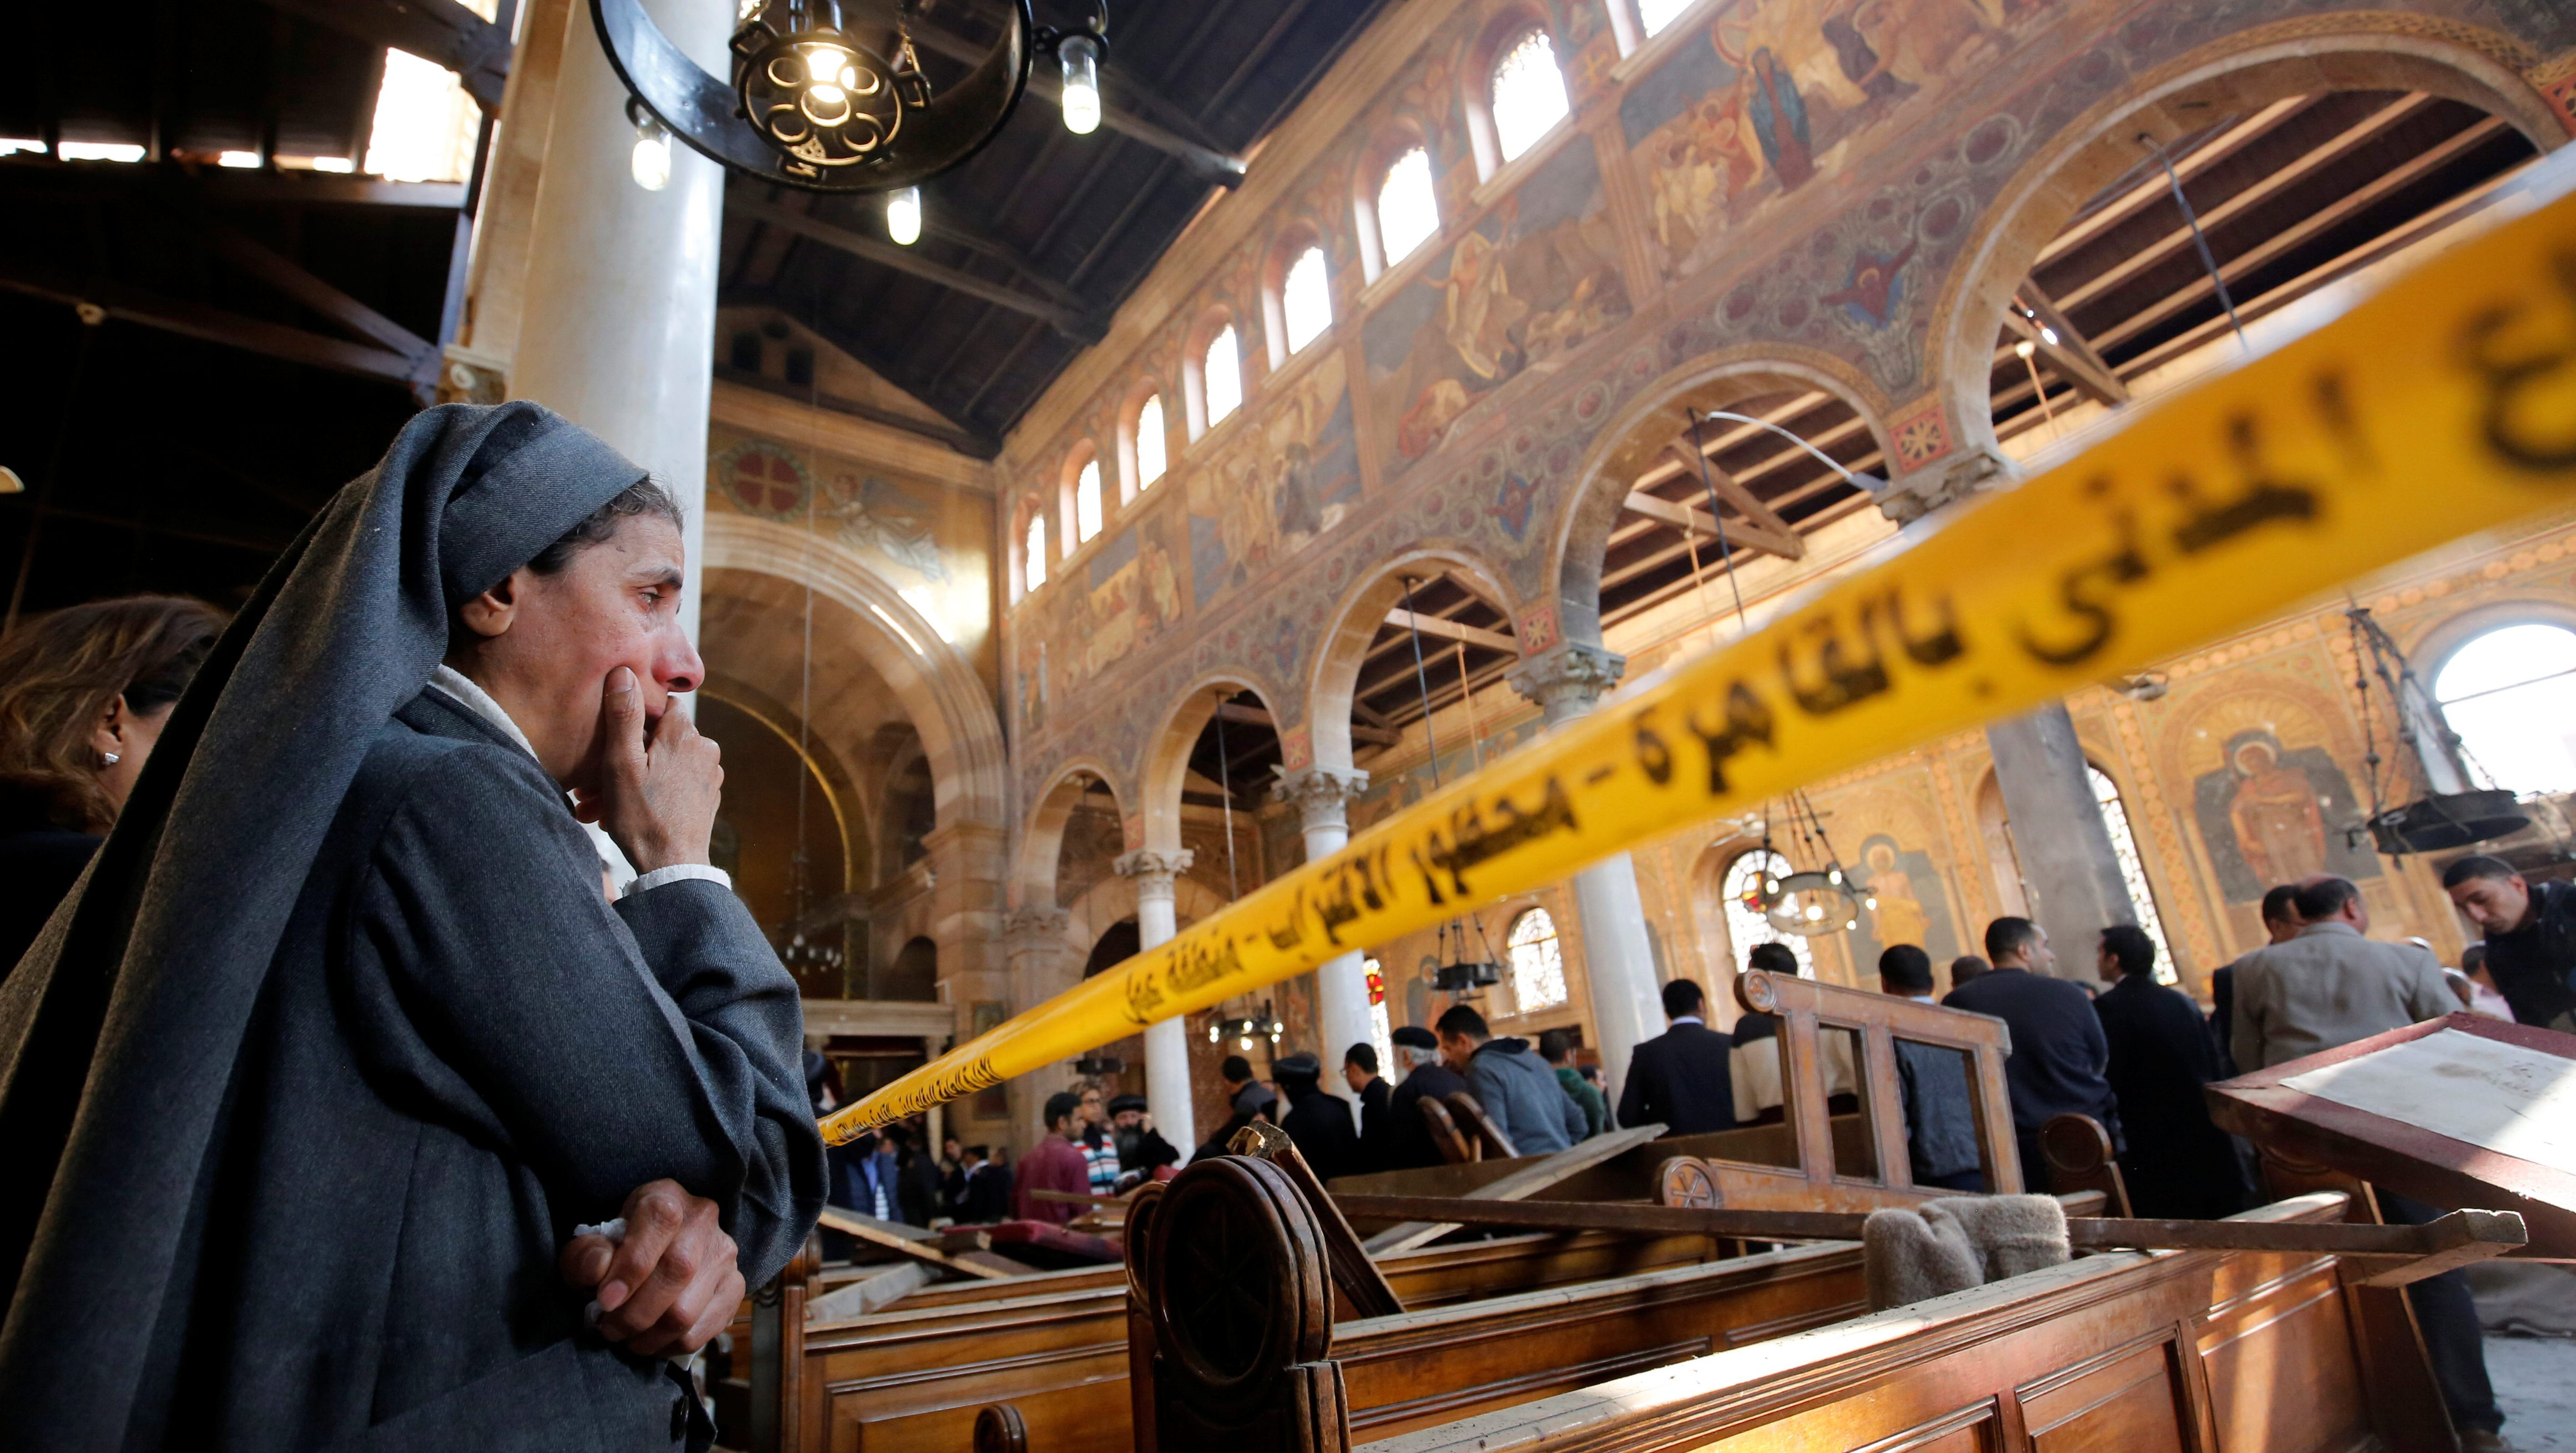 A nun cries as she stands at the scene inside Cairo's Coptic cathedral, following a bombing, in Egypt